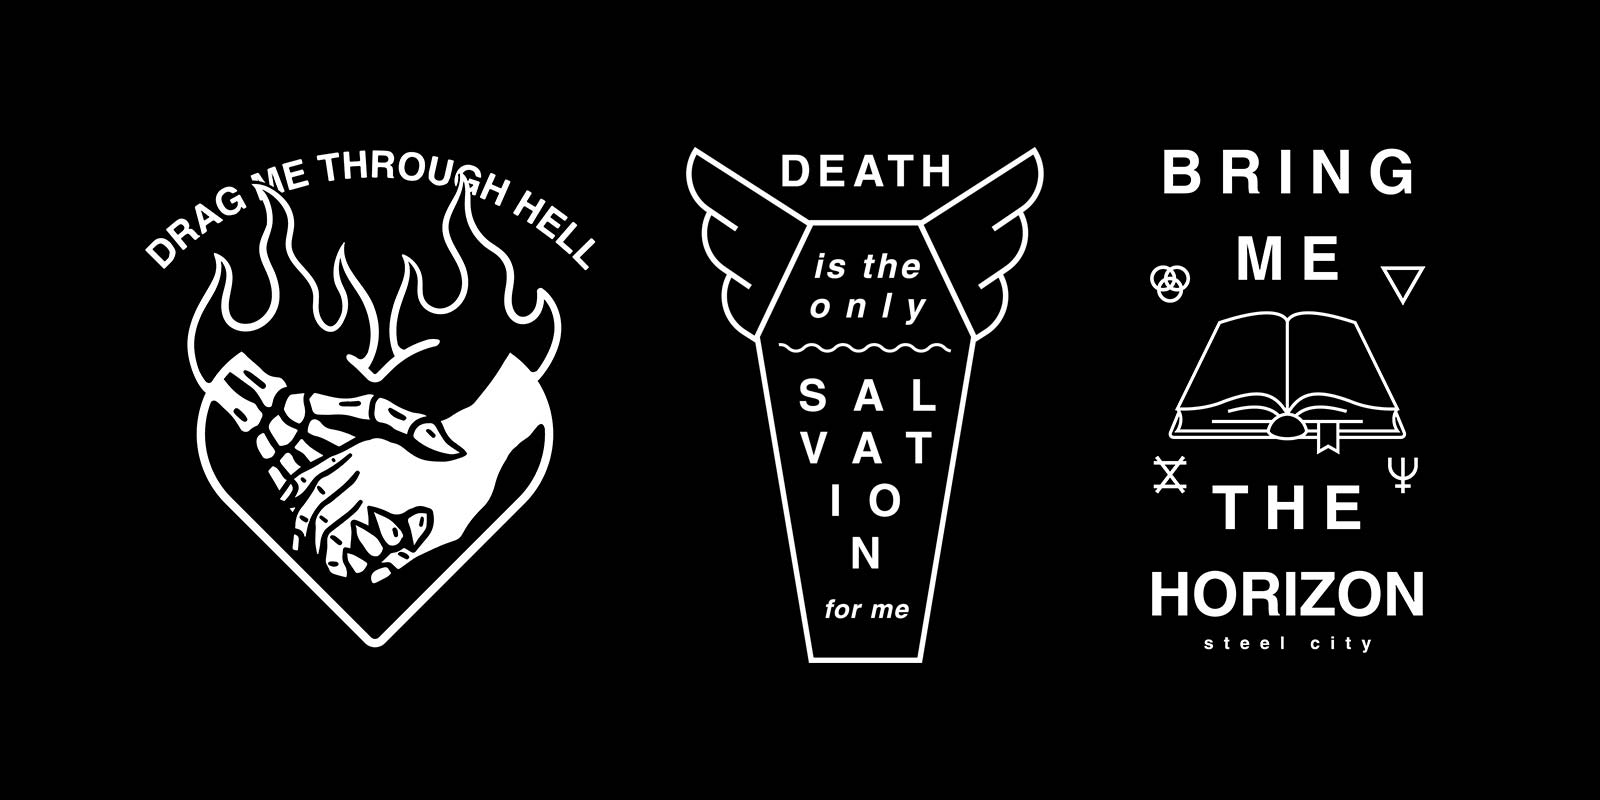 06-bmth